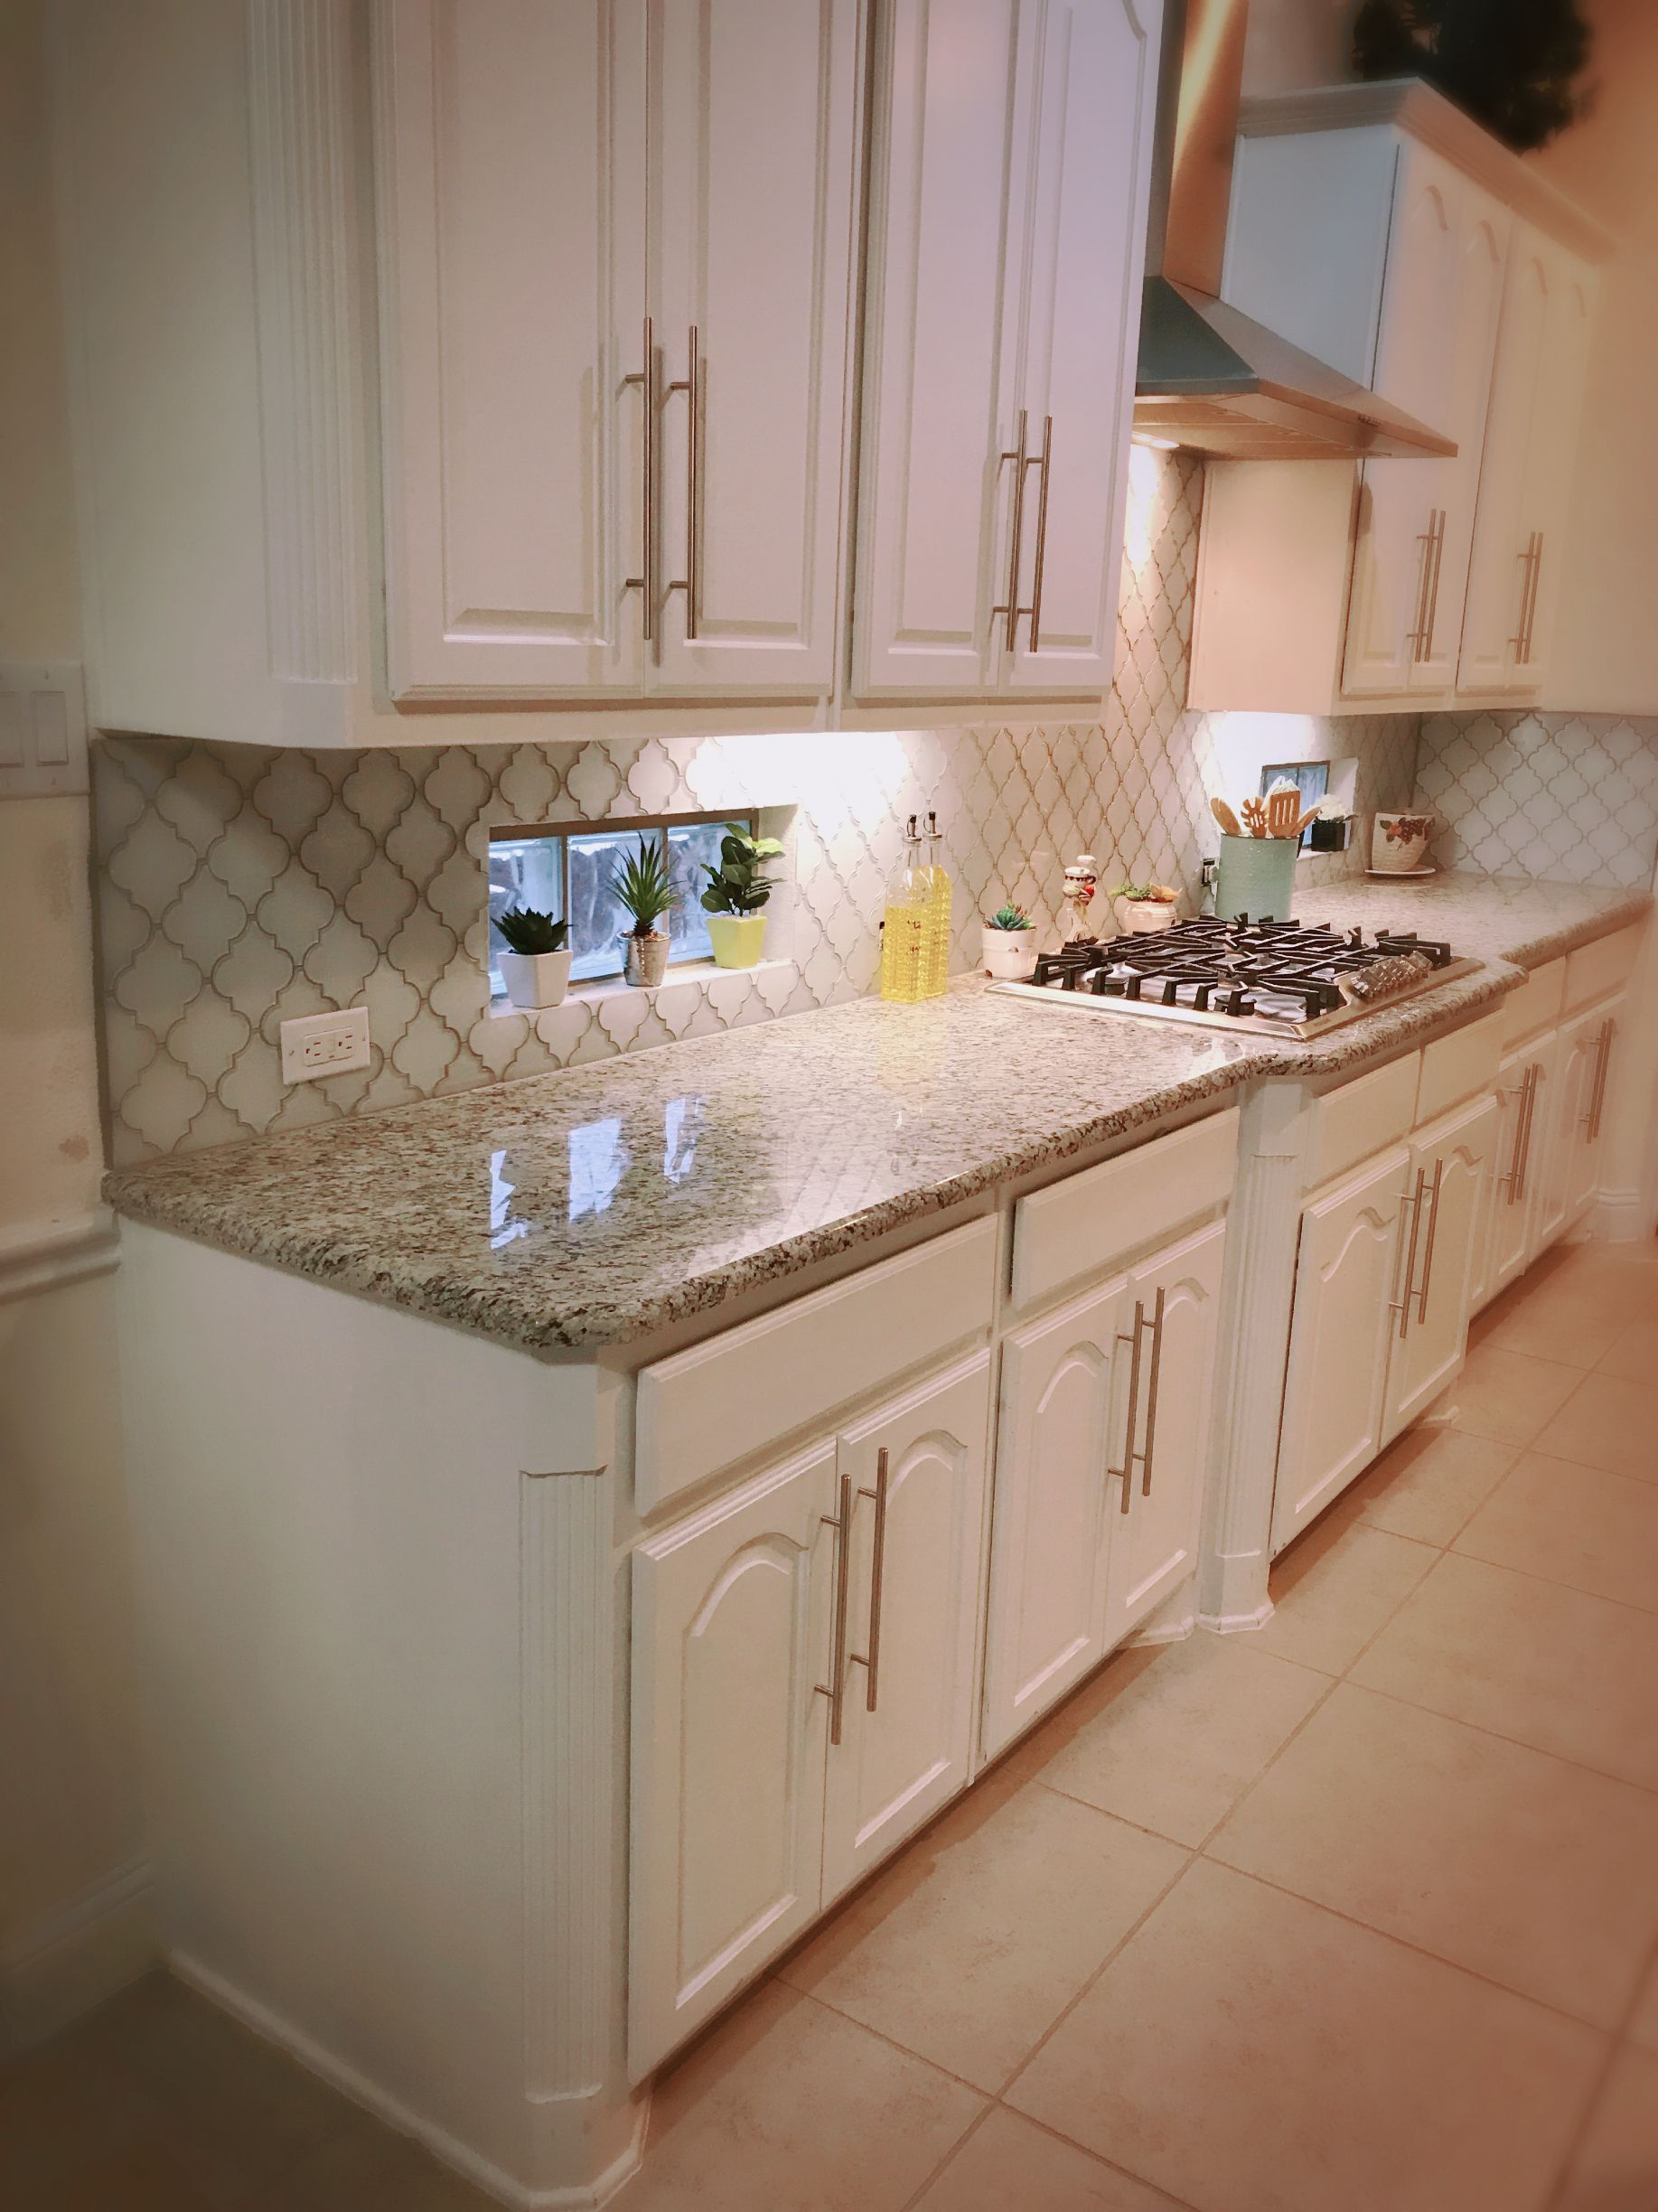 Kitchen BacksplashArabesque Tile BacksplashKitchen VentHerringbone BacksplashBacksplash